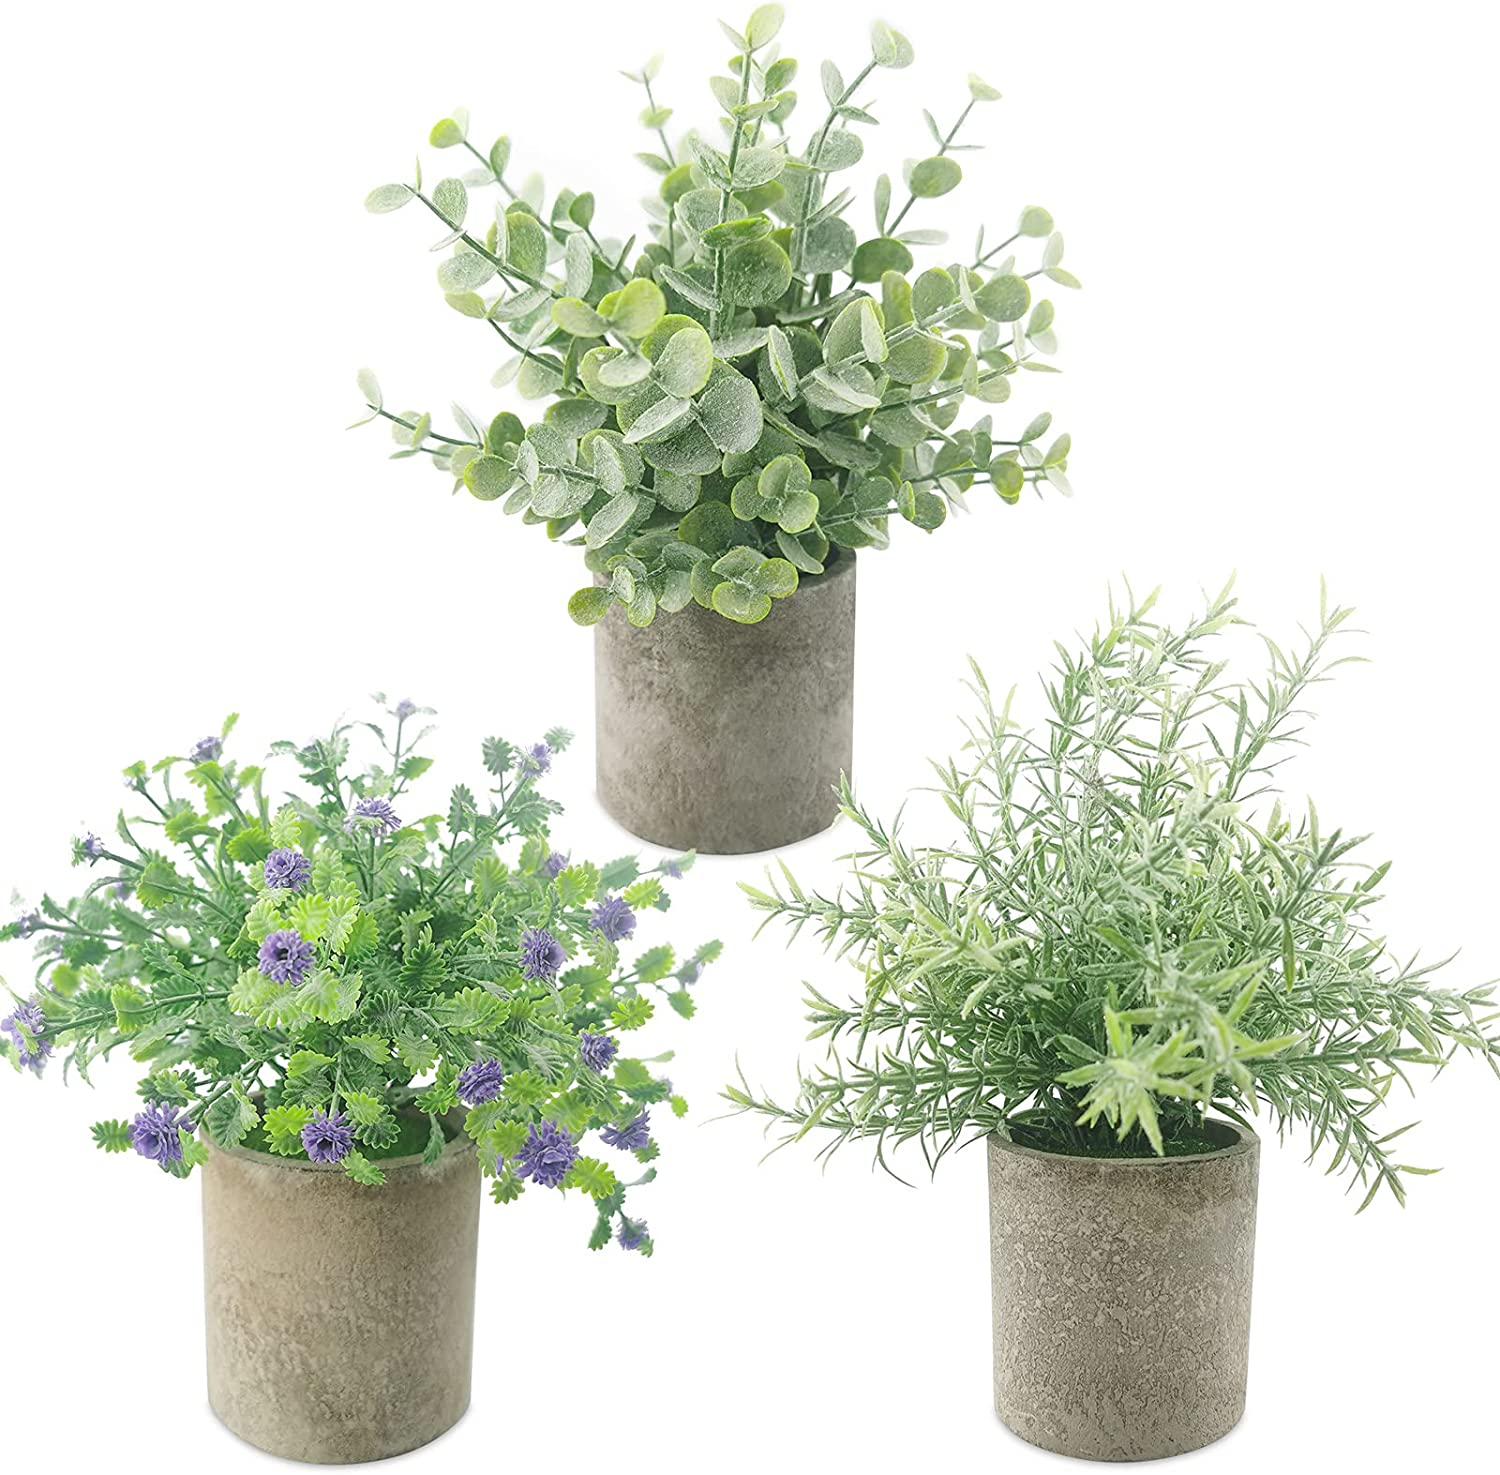 3 Pack Potted Fake Plants-Artificial Plants Potted with Green Oldenlandia Diffusa,Green Eucalyptus&Purple Gypsophila for Room Decor, Desk,in Office,Bedroom,Bathroom